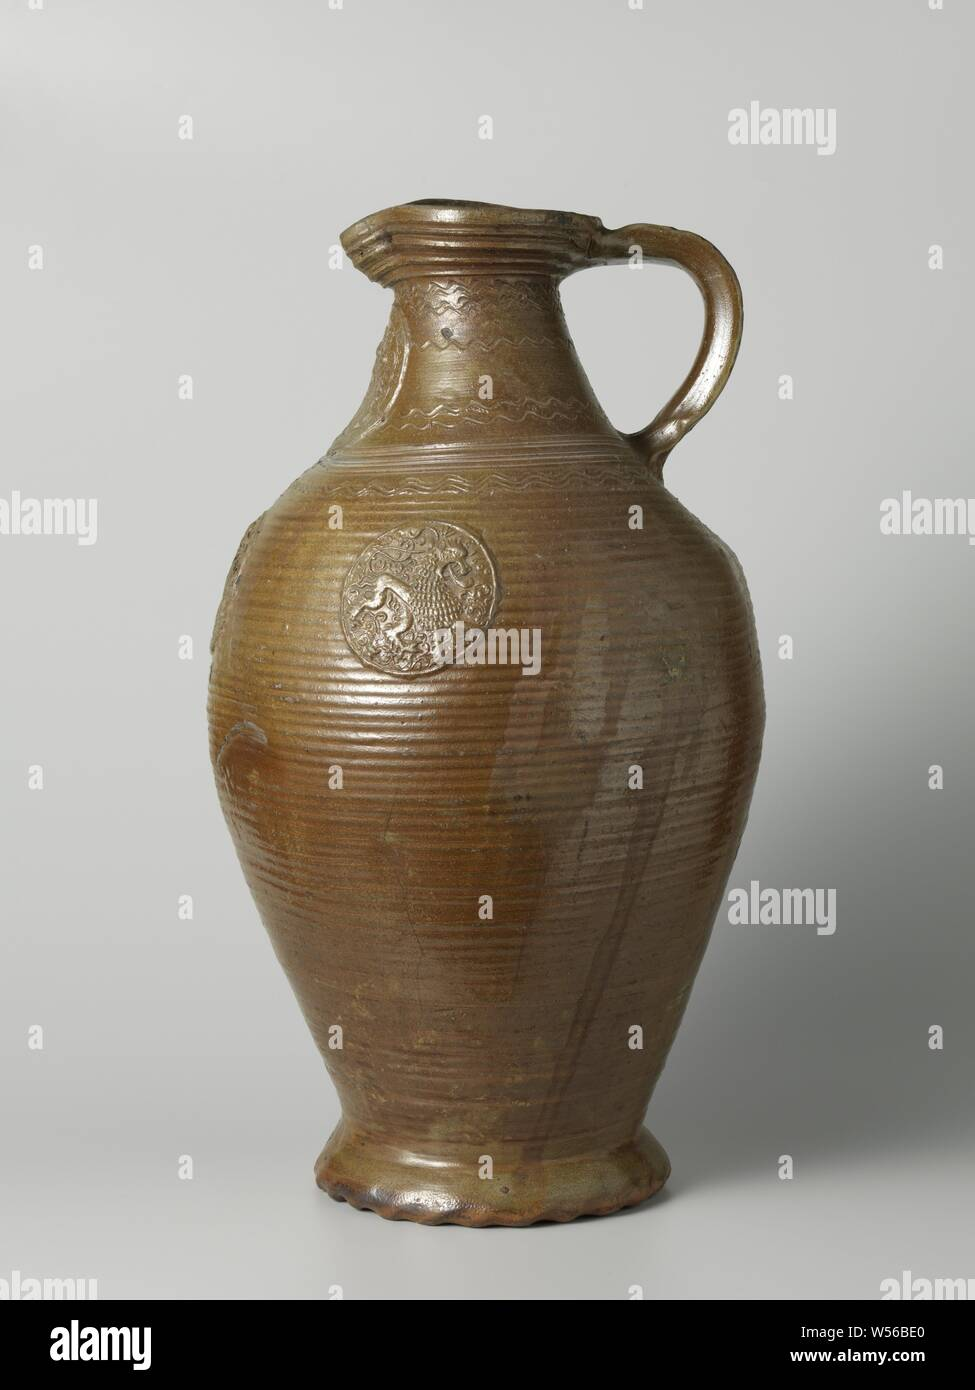 Storrage vessel with a coat of arms and lions, Stock jug of stoneware on wavy feet with an egg-shaped body and wide neck with a pinched spout. The C-shaped ear is attached to the neck and shoulder. Profiles on the neck and shoulder. Covered with a brown engobe. The jug is decorated with rotating rings. On the neck in relief a printed and imposed medallion with a weapon and the edge lettering 'I.WILHELMVS.VO.REIFENBERG M.I.ANNA VOM BATEMBORG.1604'. The belly with three smaller medallions with a lion, the brand 'W.E.' and the date '1600'. On the neck and shoulder bands with incised, wavy lines Stock Photo